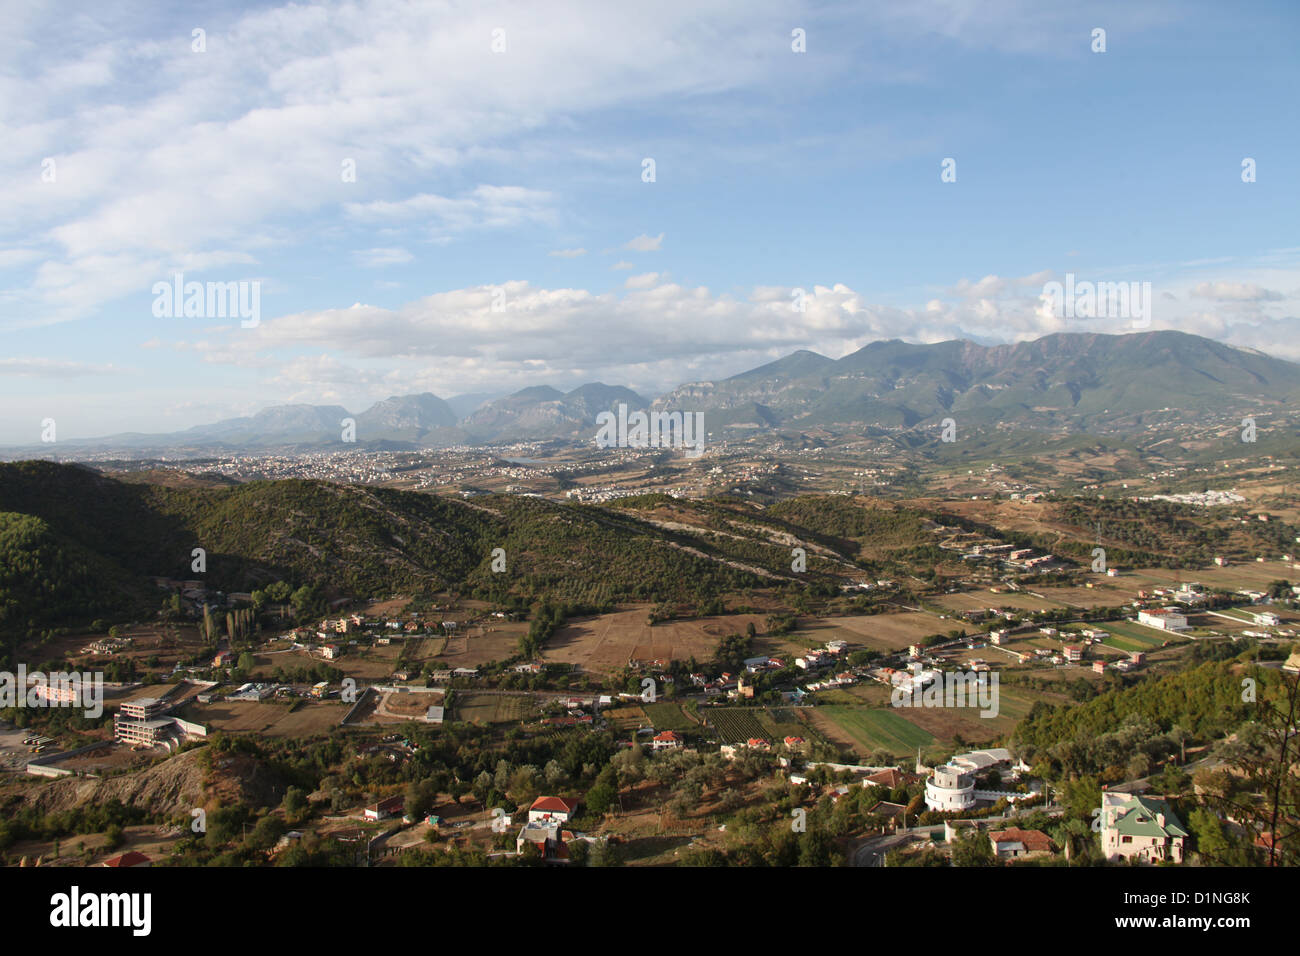 View of Tirana the Capital of Albania and the Erzen Valley taken from Petrele Castle - Stock Image